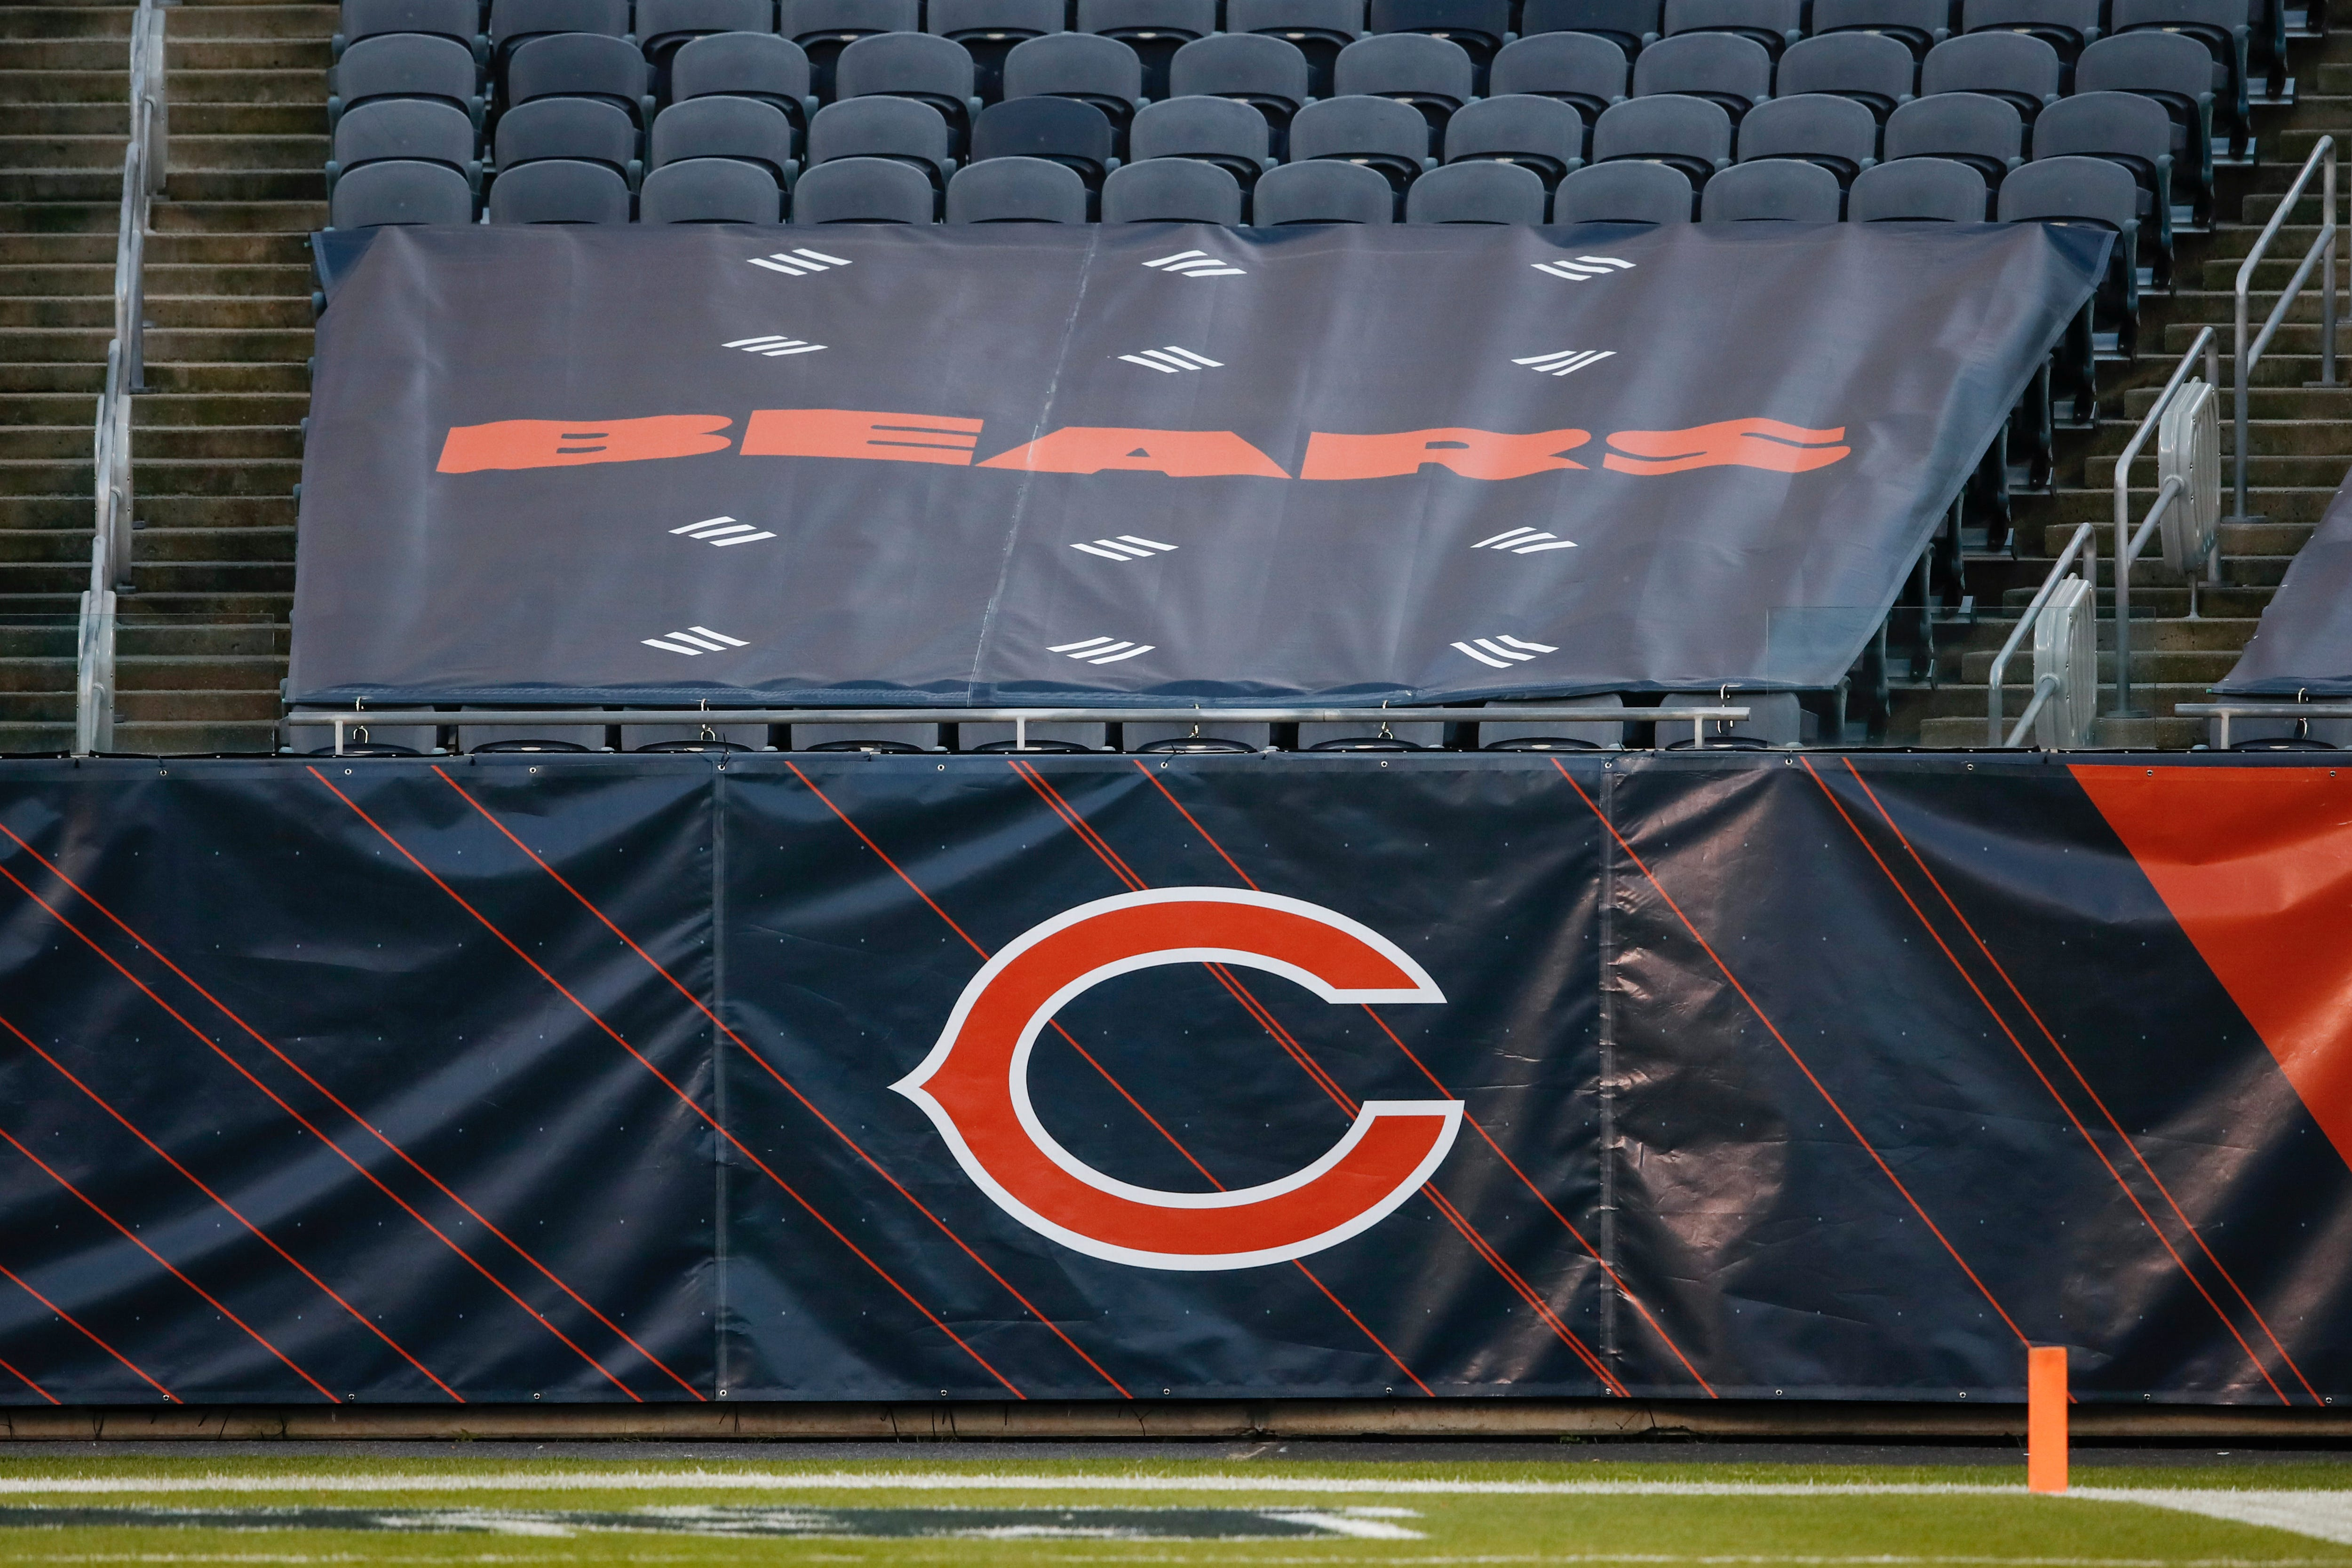 Bears, Chiefs join Texans, Colts as NFL teams closing facilities Thursday due to COVID-19 tests